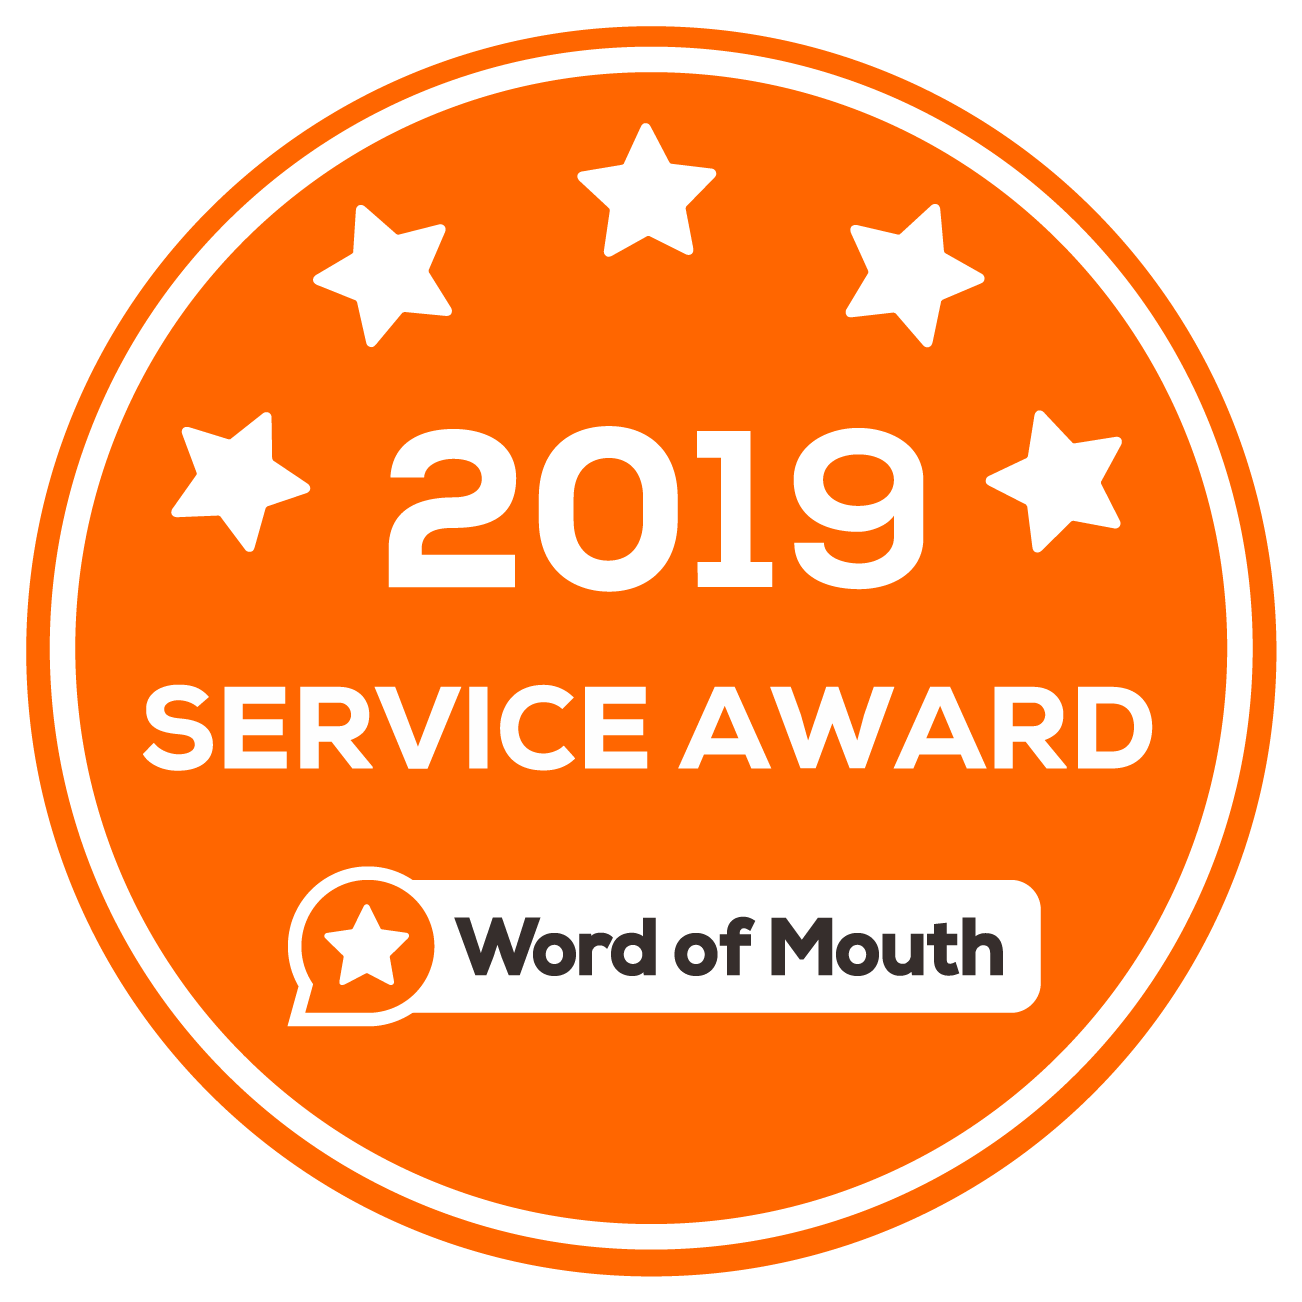 Word of Mouth Service Award - 2019